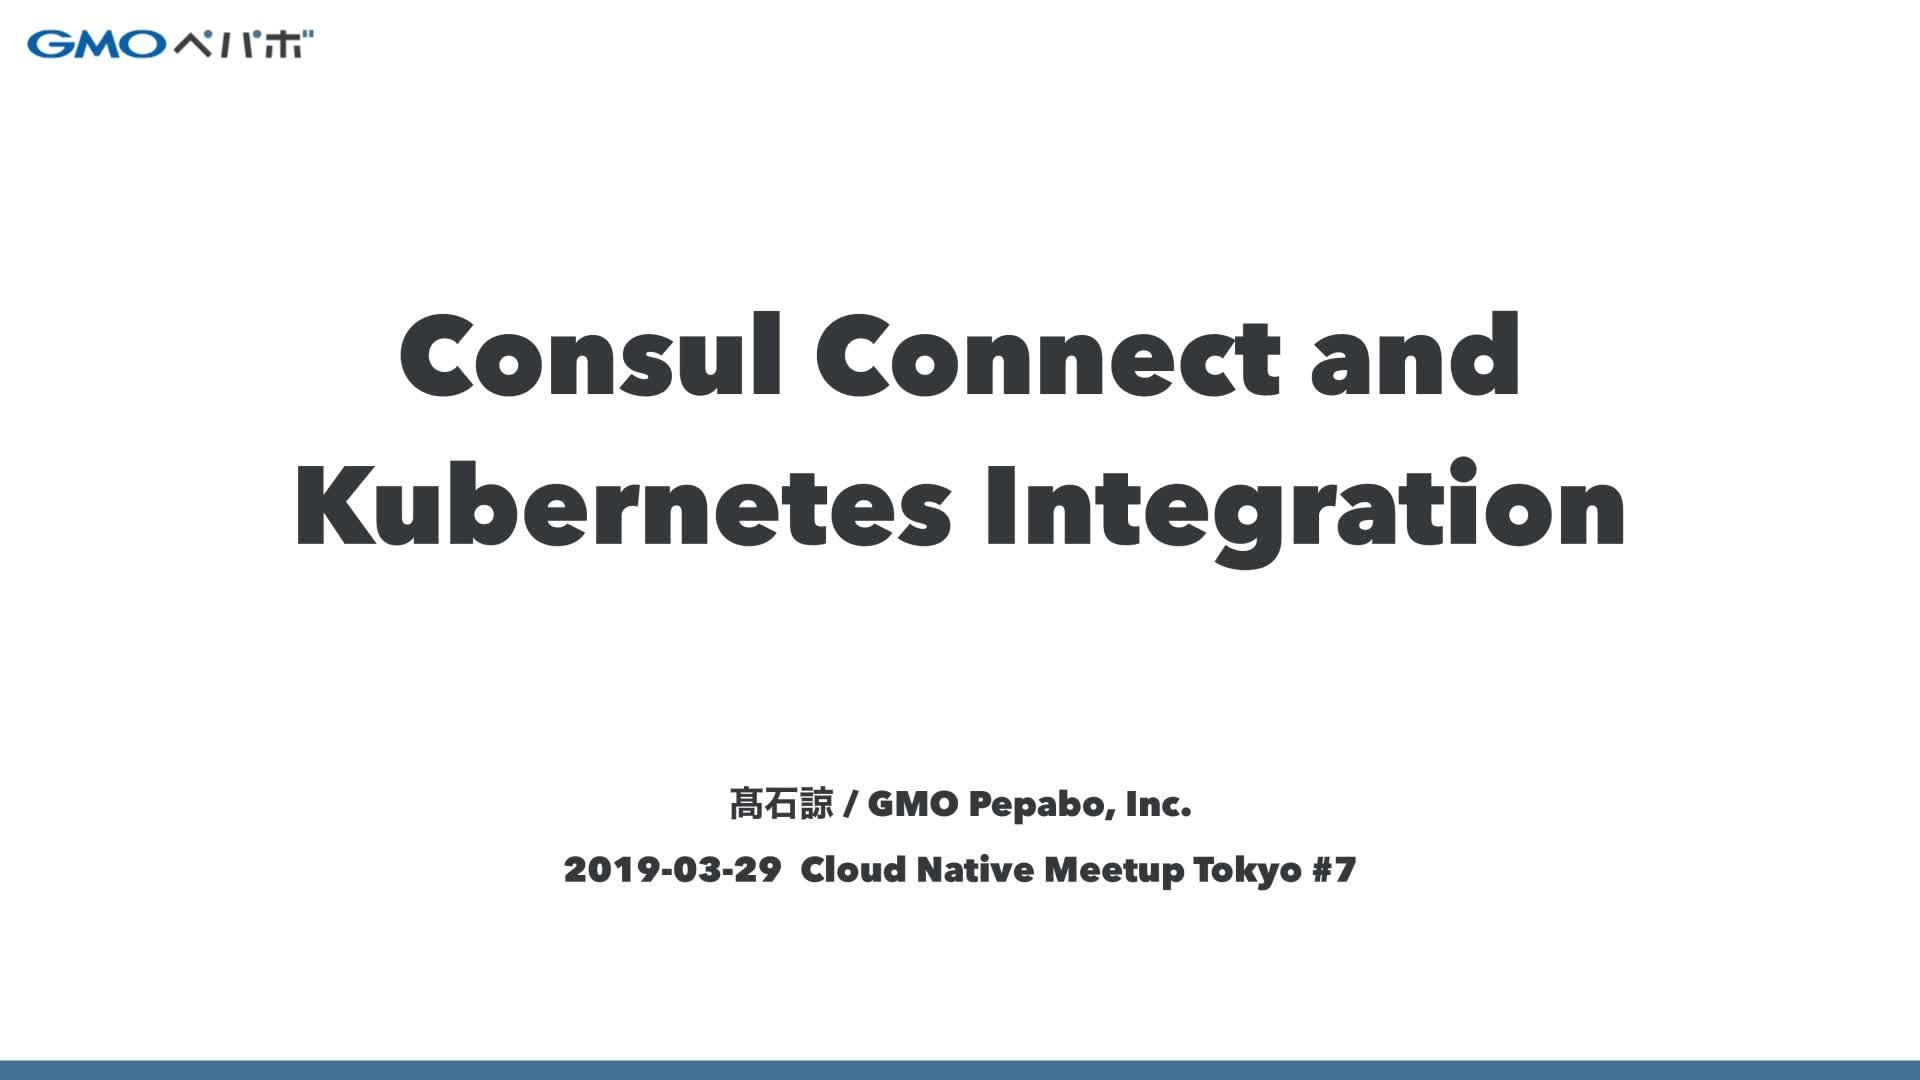 Introduction to Consul Kubernetes Integration and Consul Connect